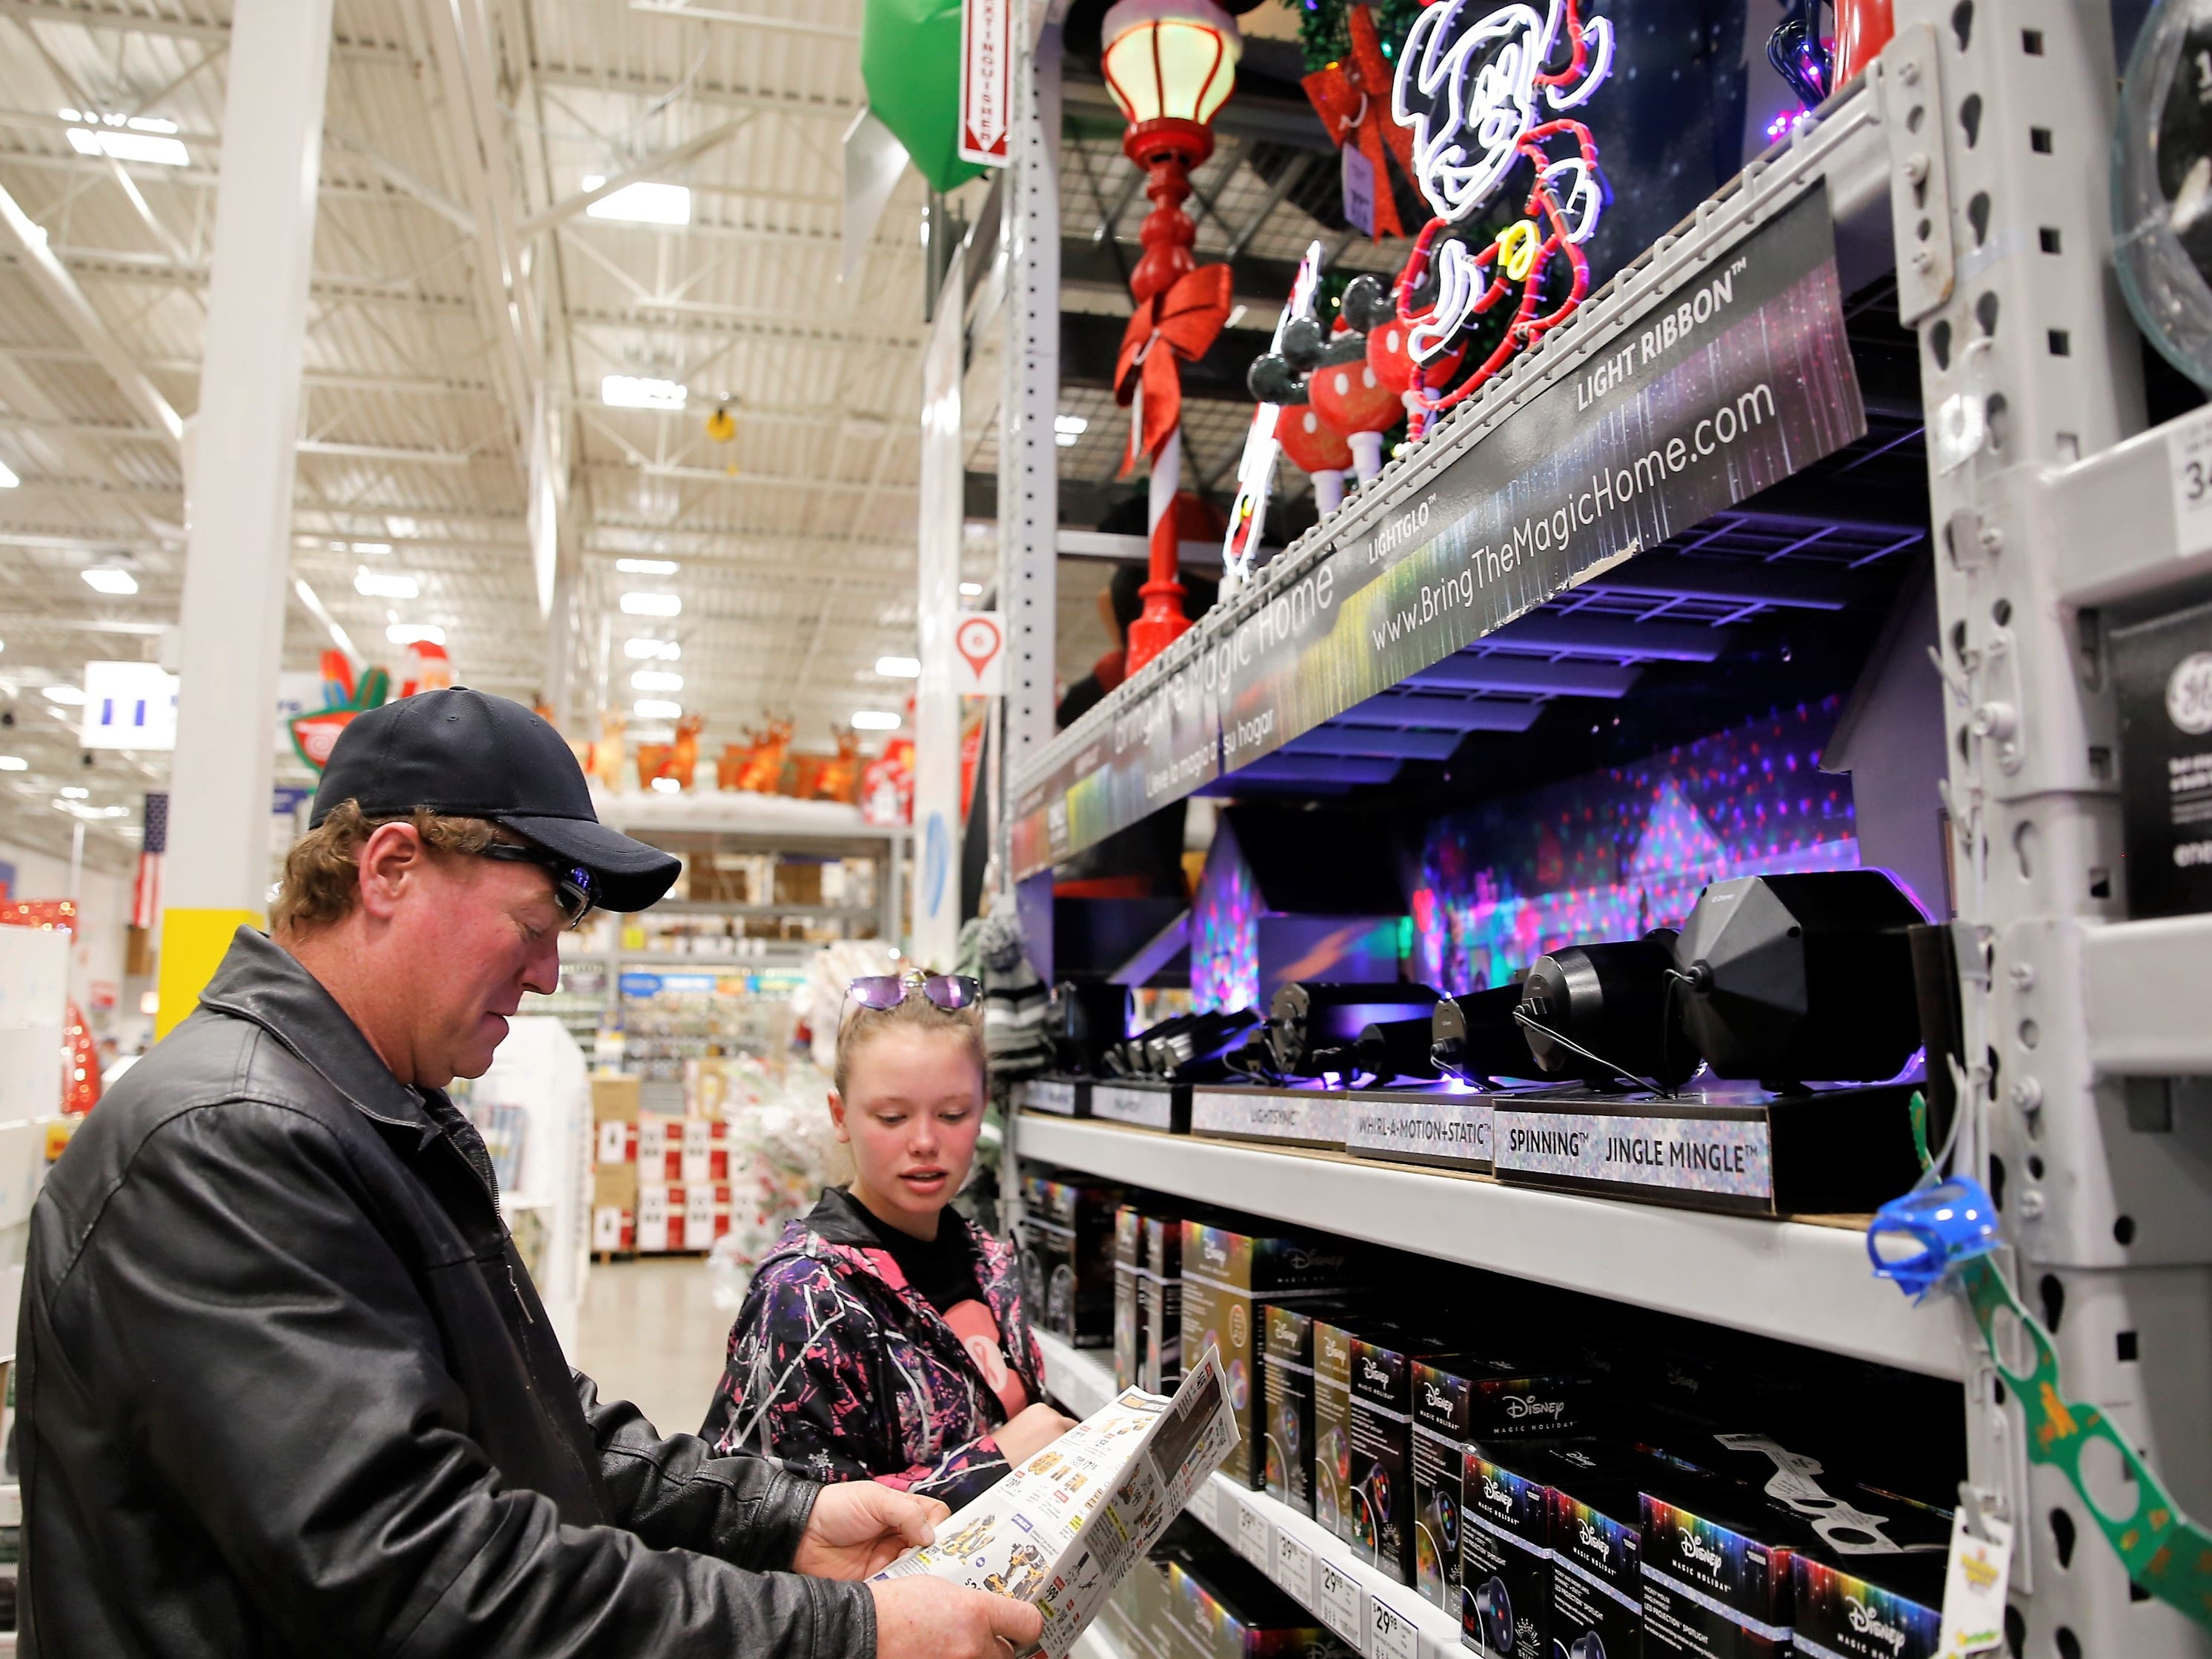 Ryen Christensen, left, and Hailey Christensen, right, look at a Lowe's home improvement store flyer as they shop for Christmas decorations Friday afternoon at Lowe's in Farmington.